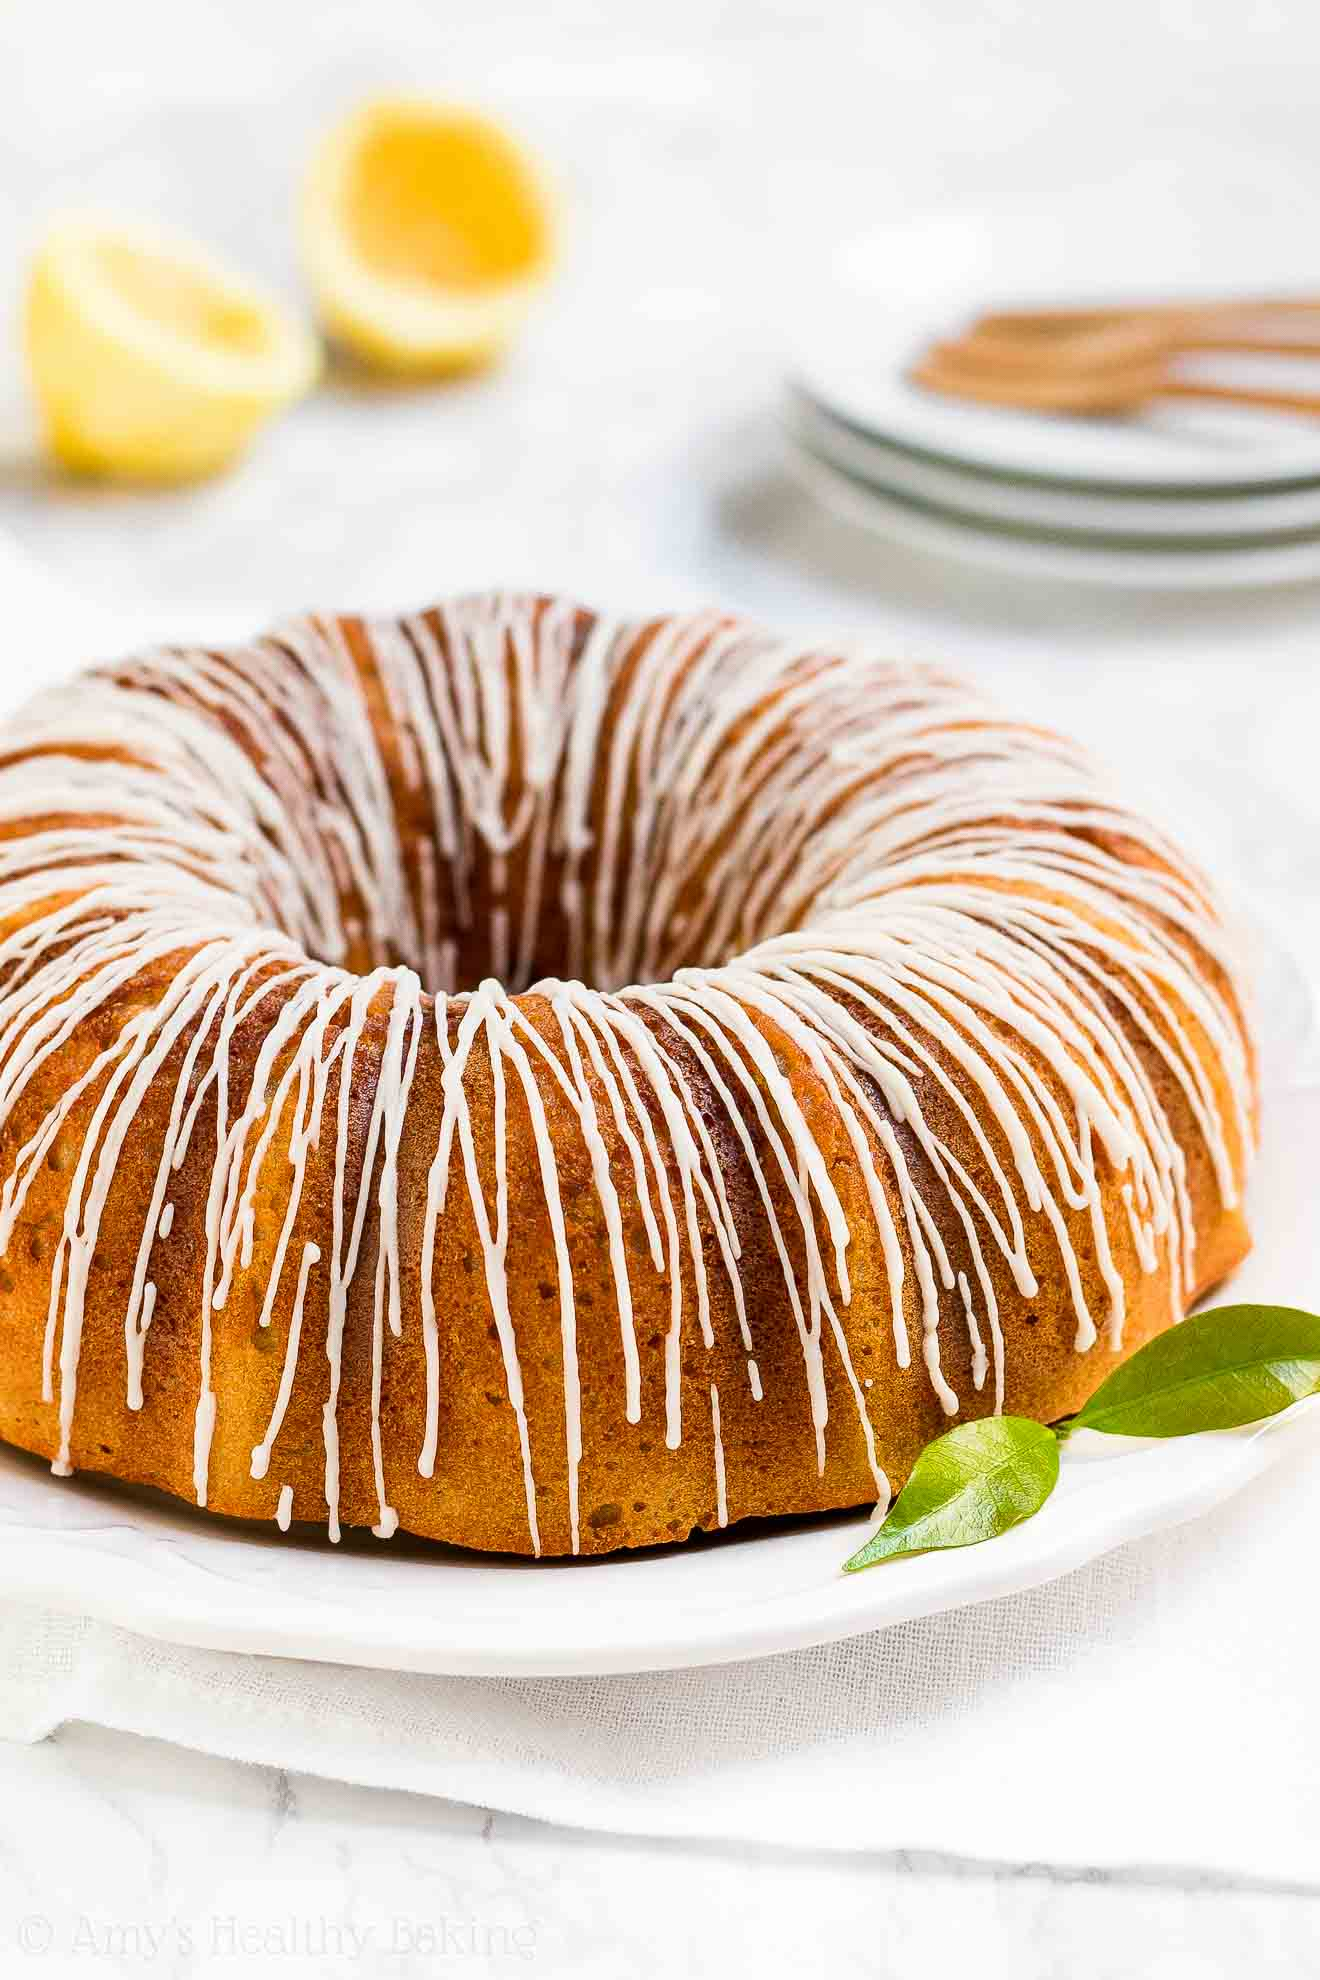 Healthy Sugar Free Diabetic Friendly Lemon Bundt Cake